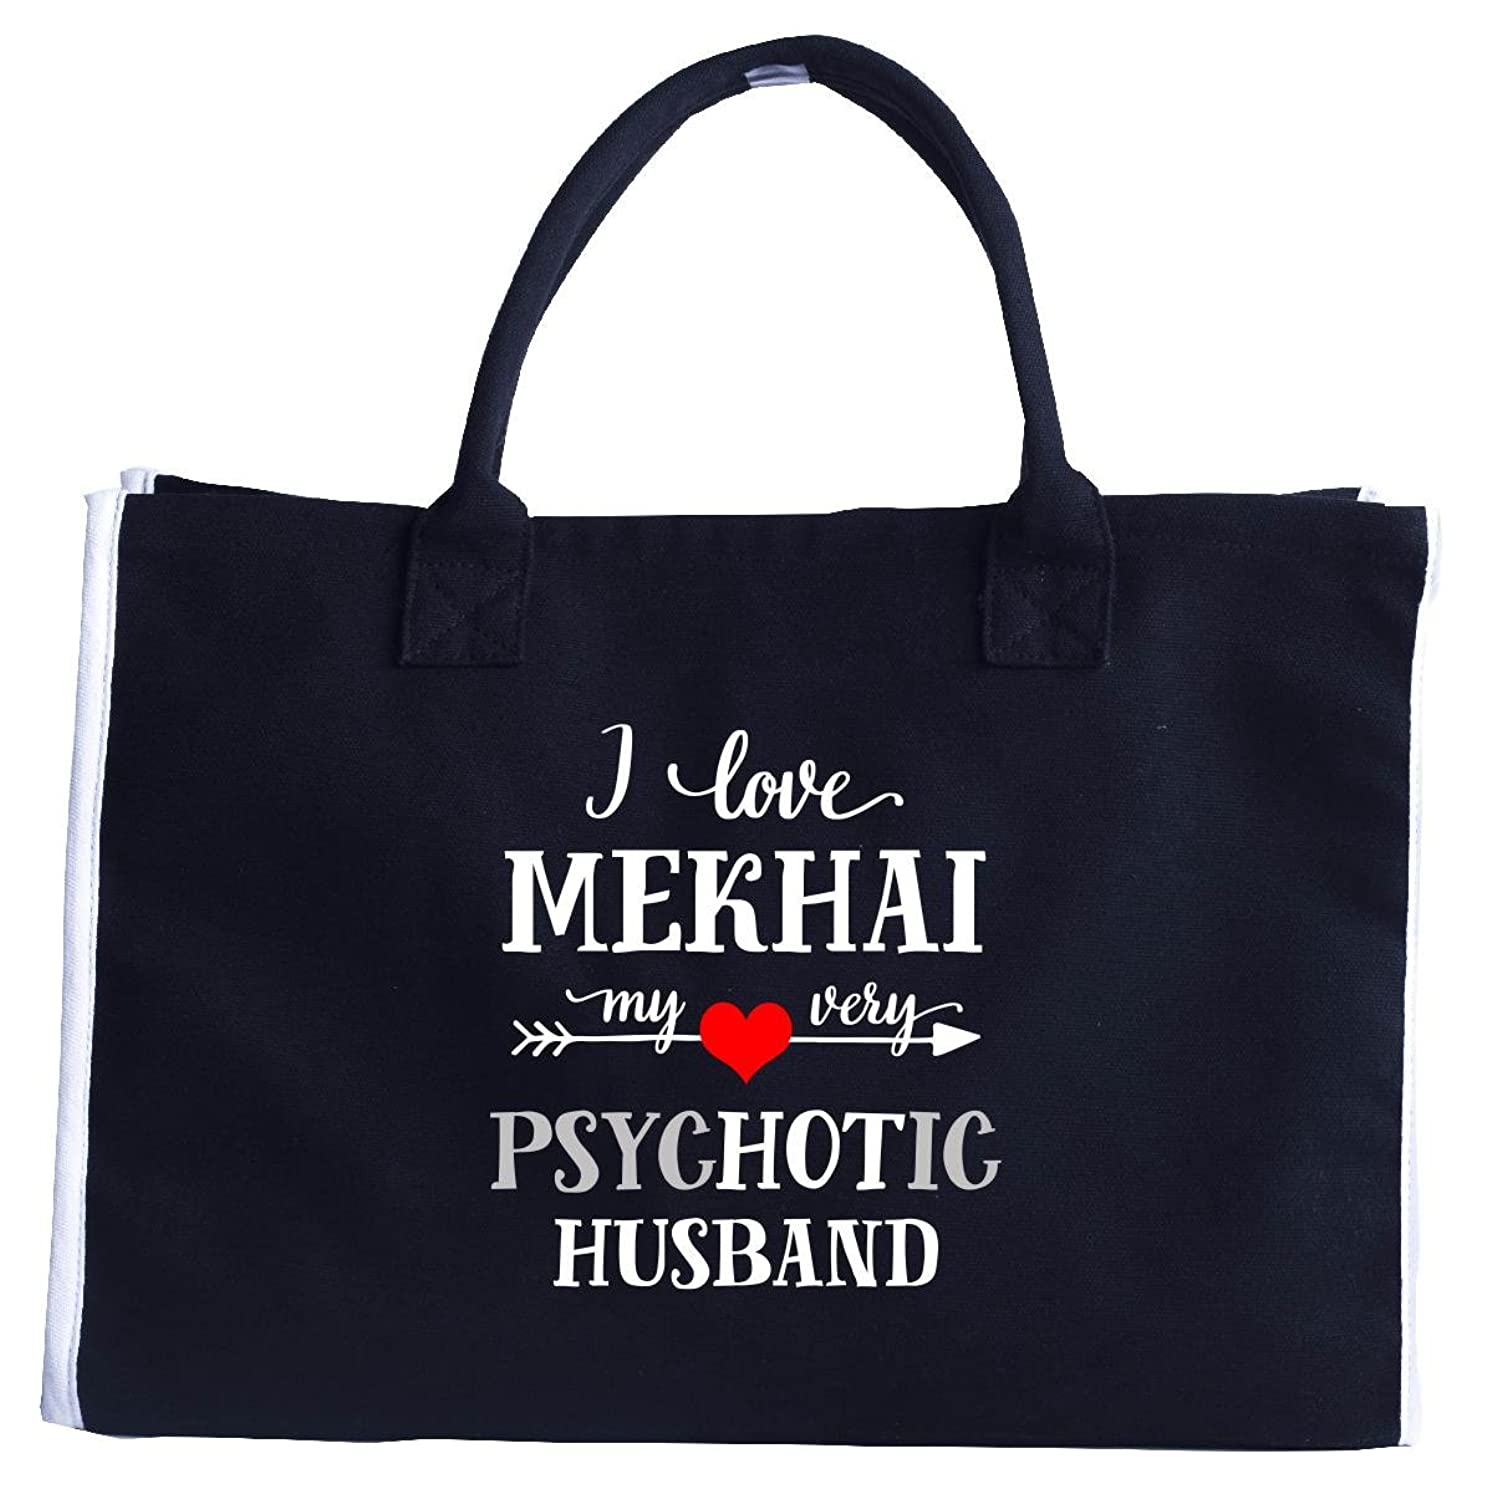 I Love Mekhai My Very Psychotic Husband. Gift For Her - Fashion Tote Bag